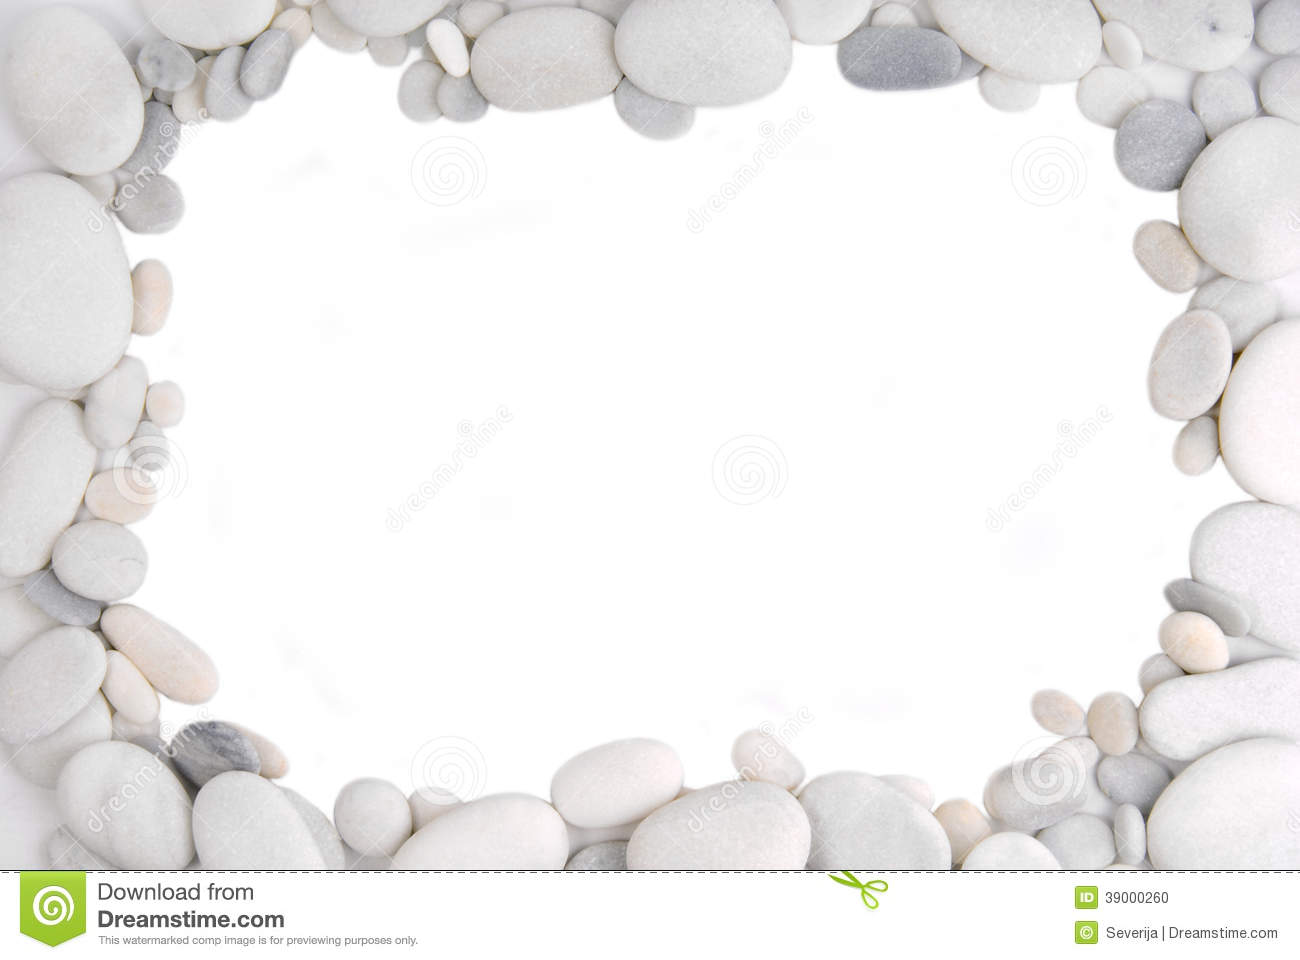 Stone frame clipart 20 free Cliparts.